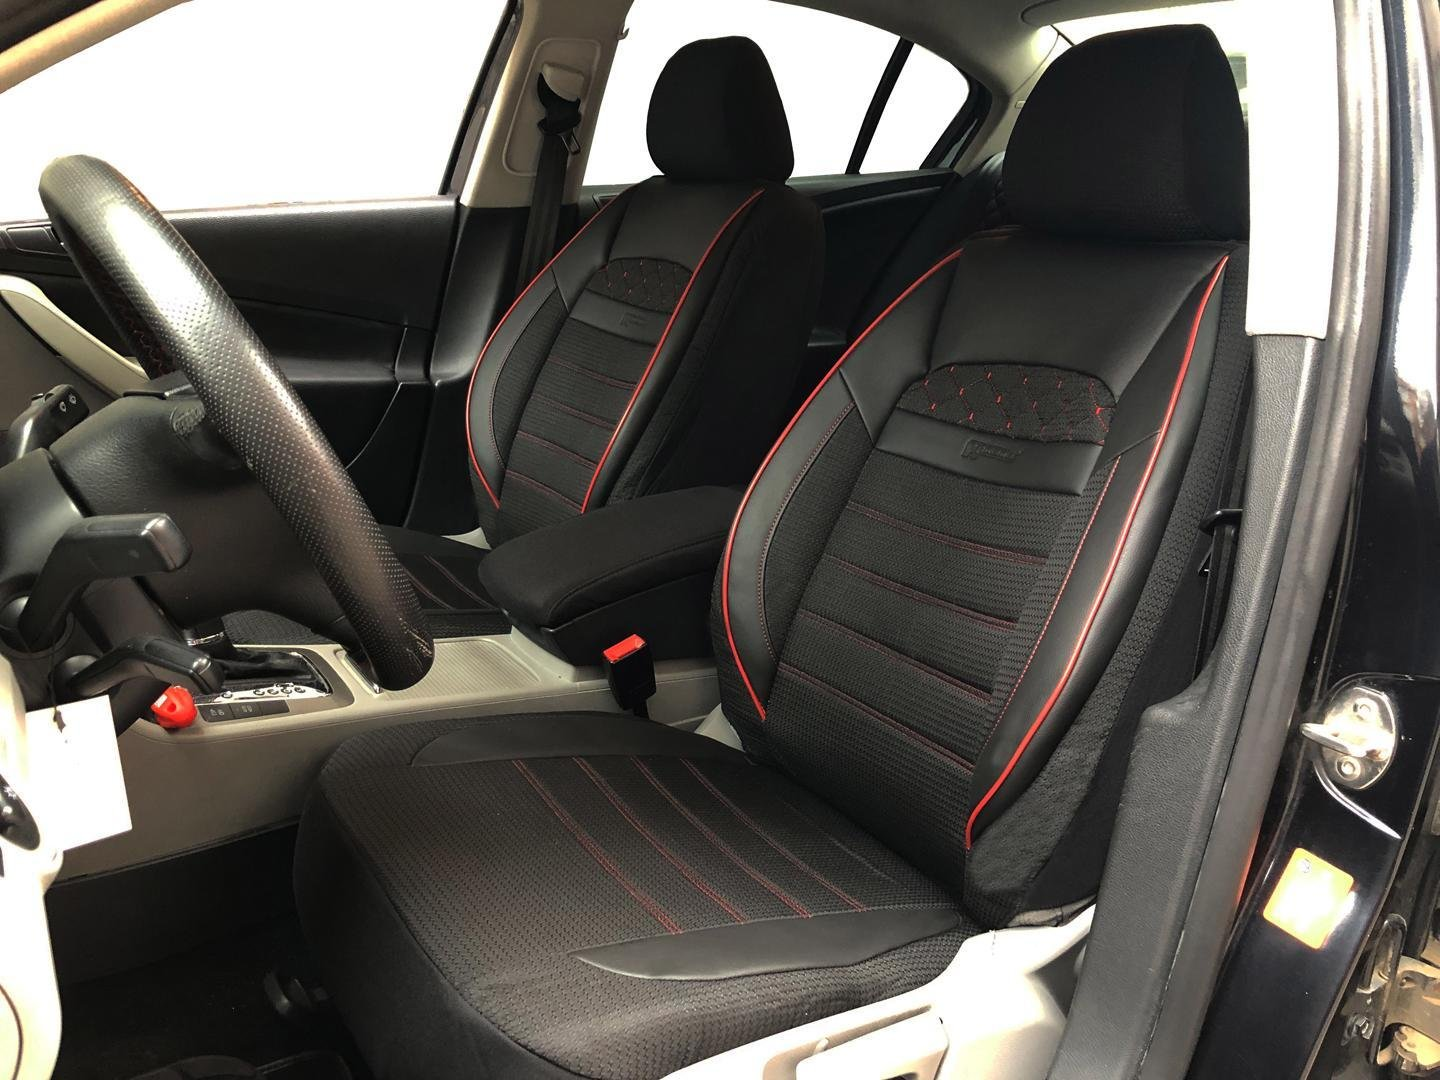 hight resolution of car seat covers protectors for bmw 3 series touring e46 black red v24 front seats